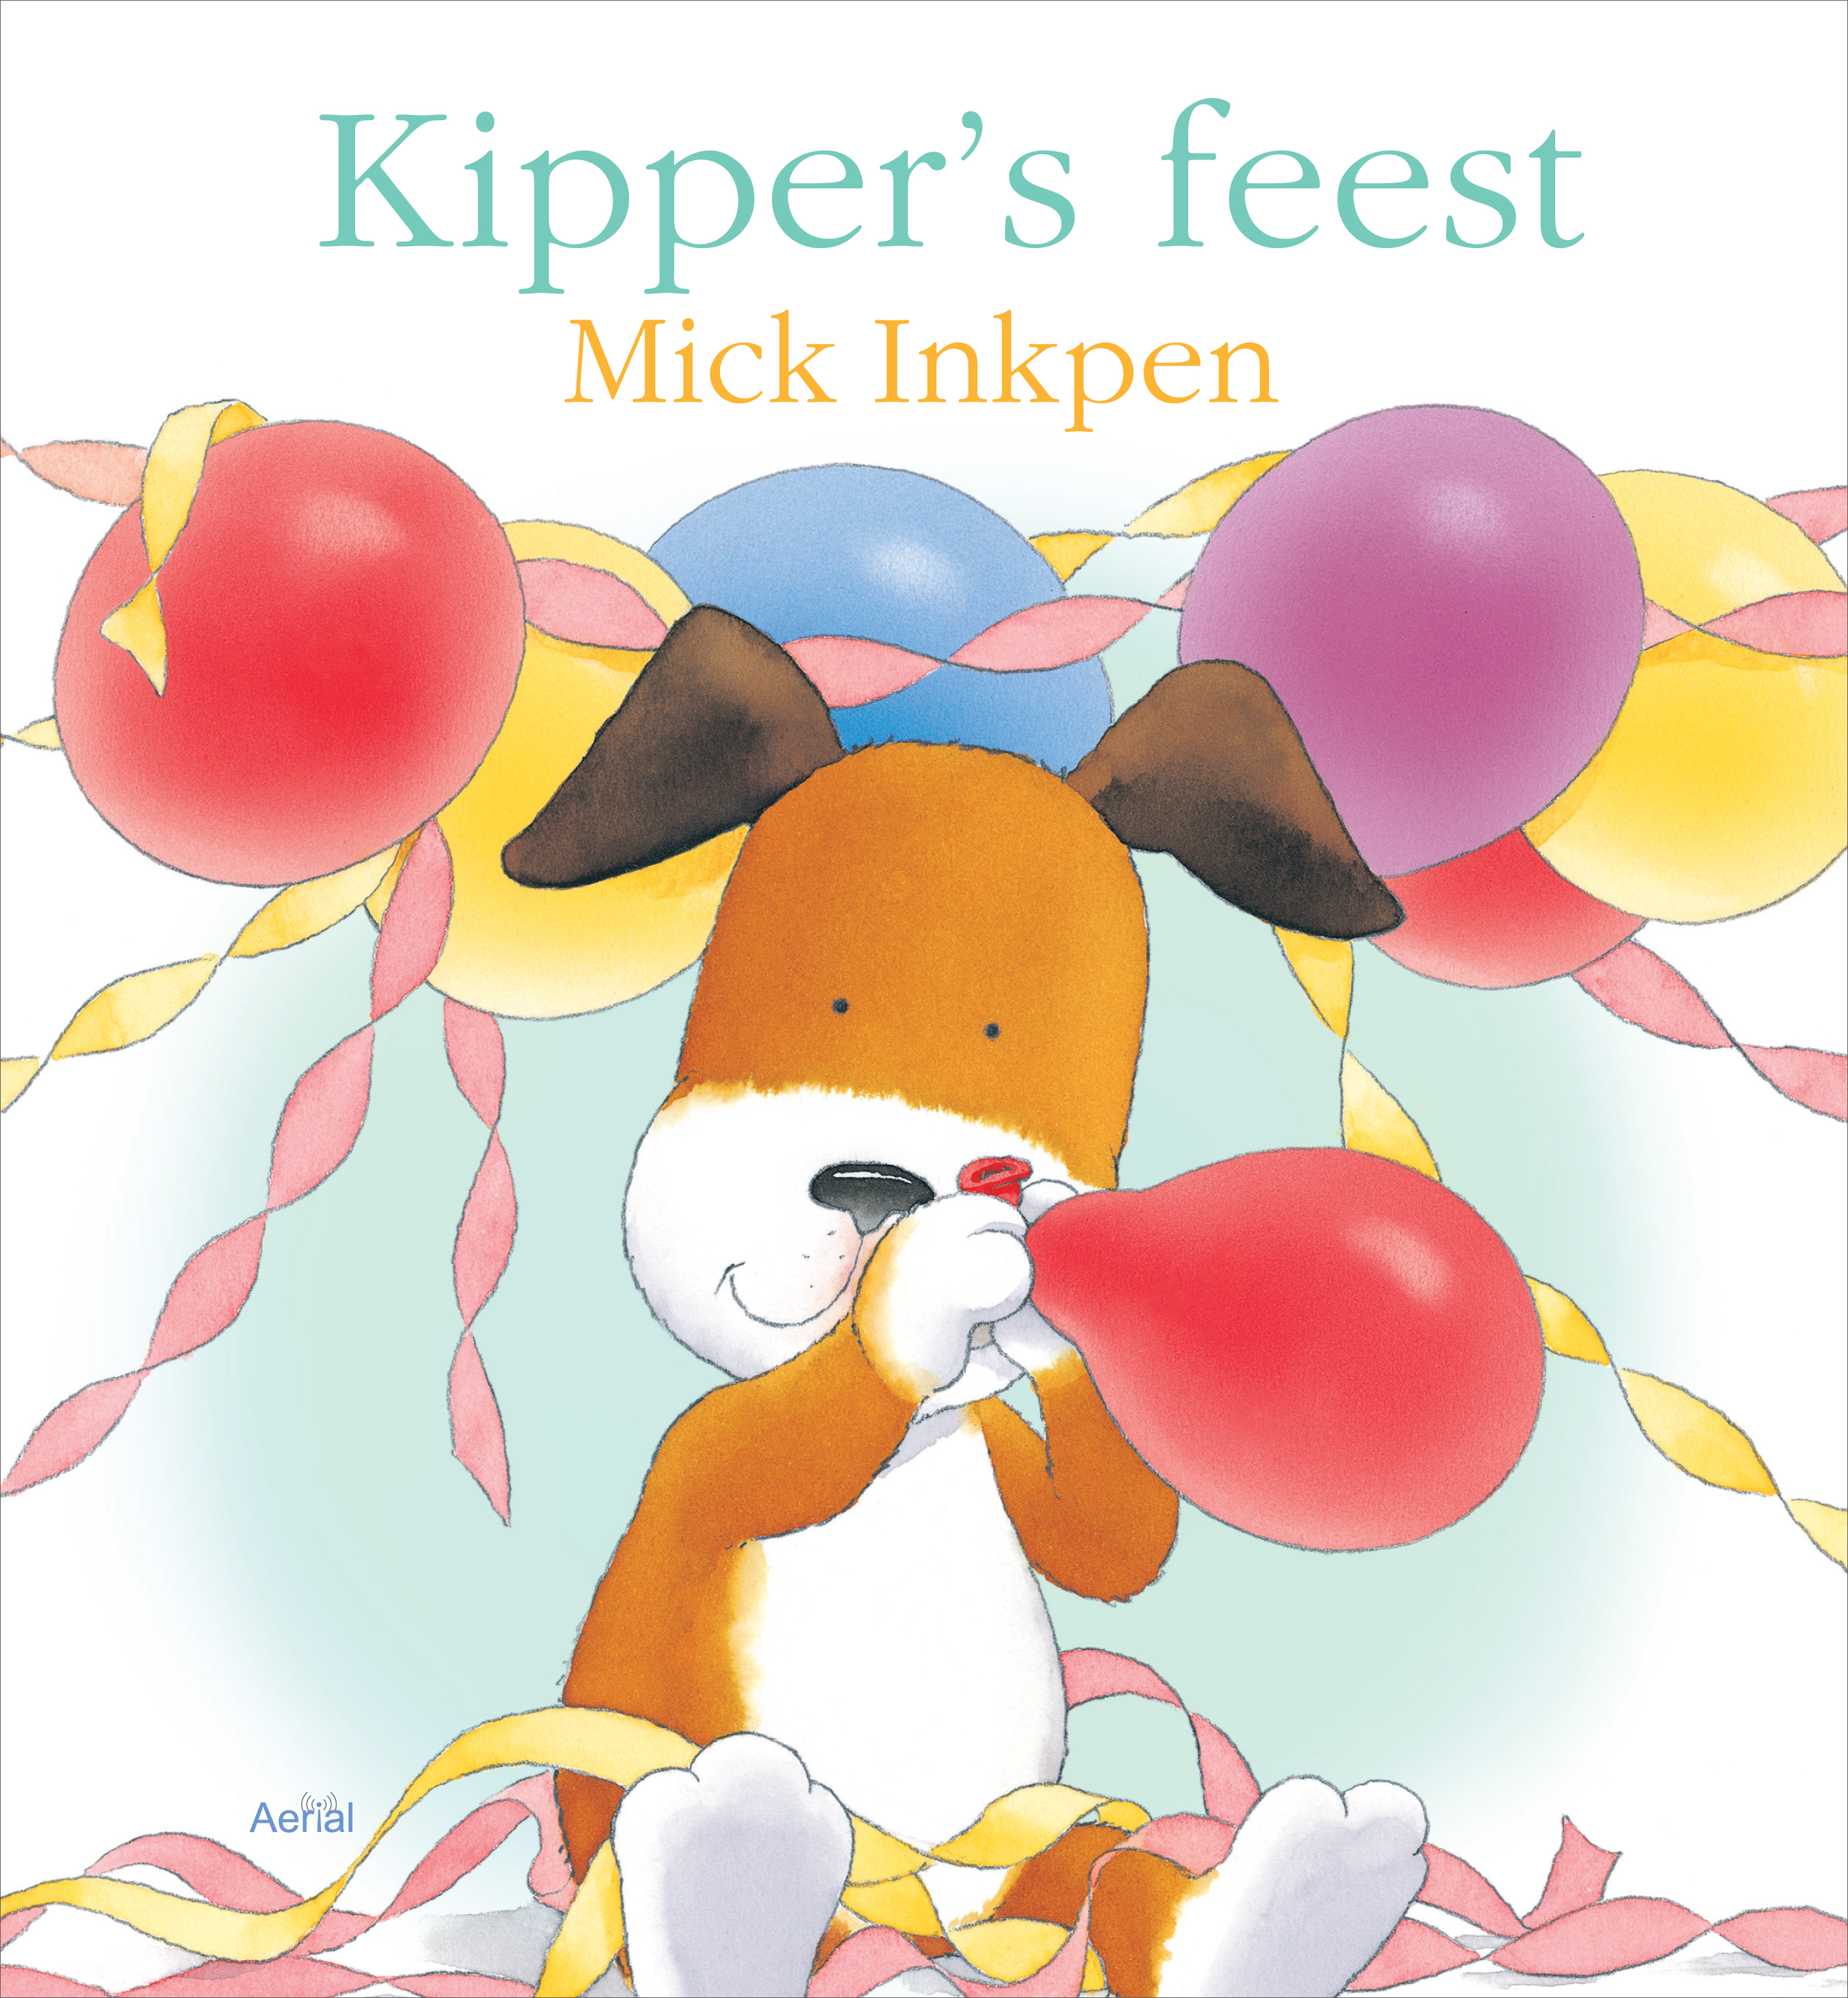 Kipper's feest Book Cover